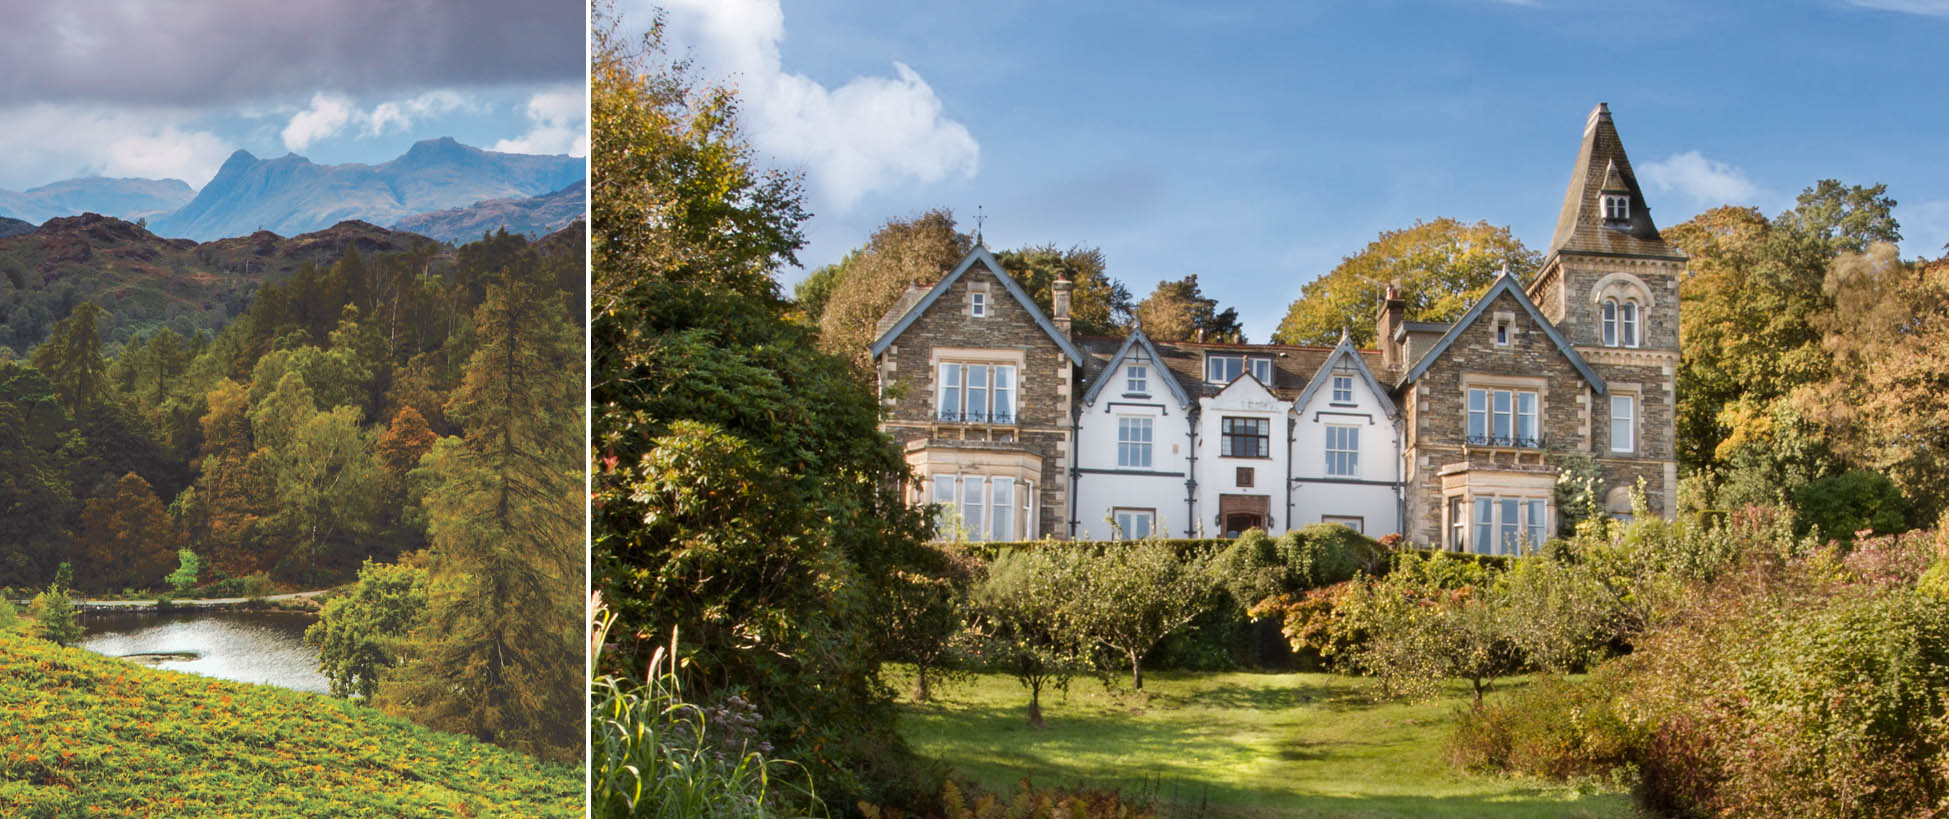 Yewfield - Guest House accommodation near Ambleside